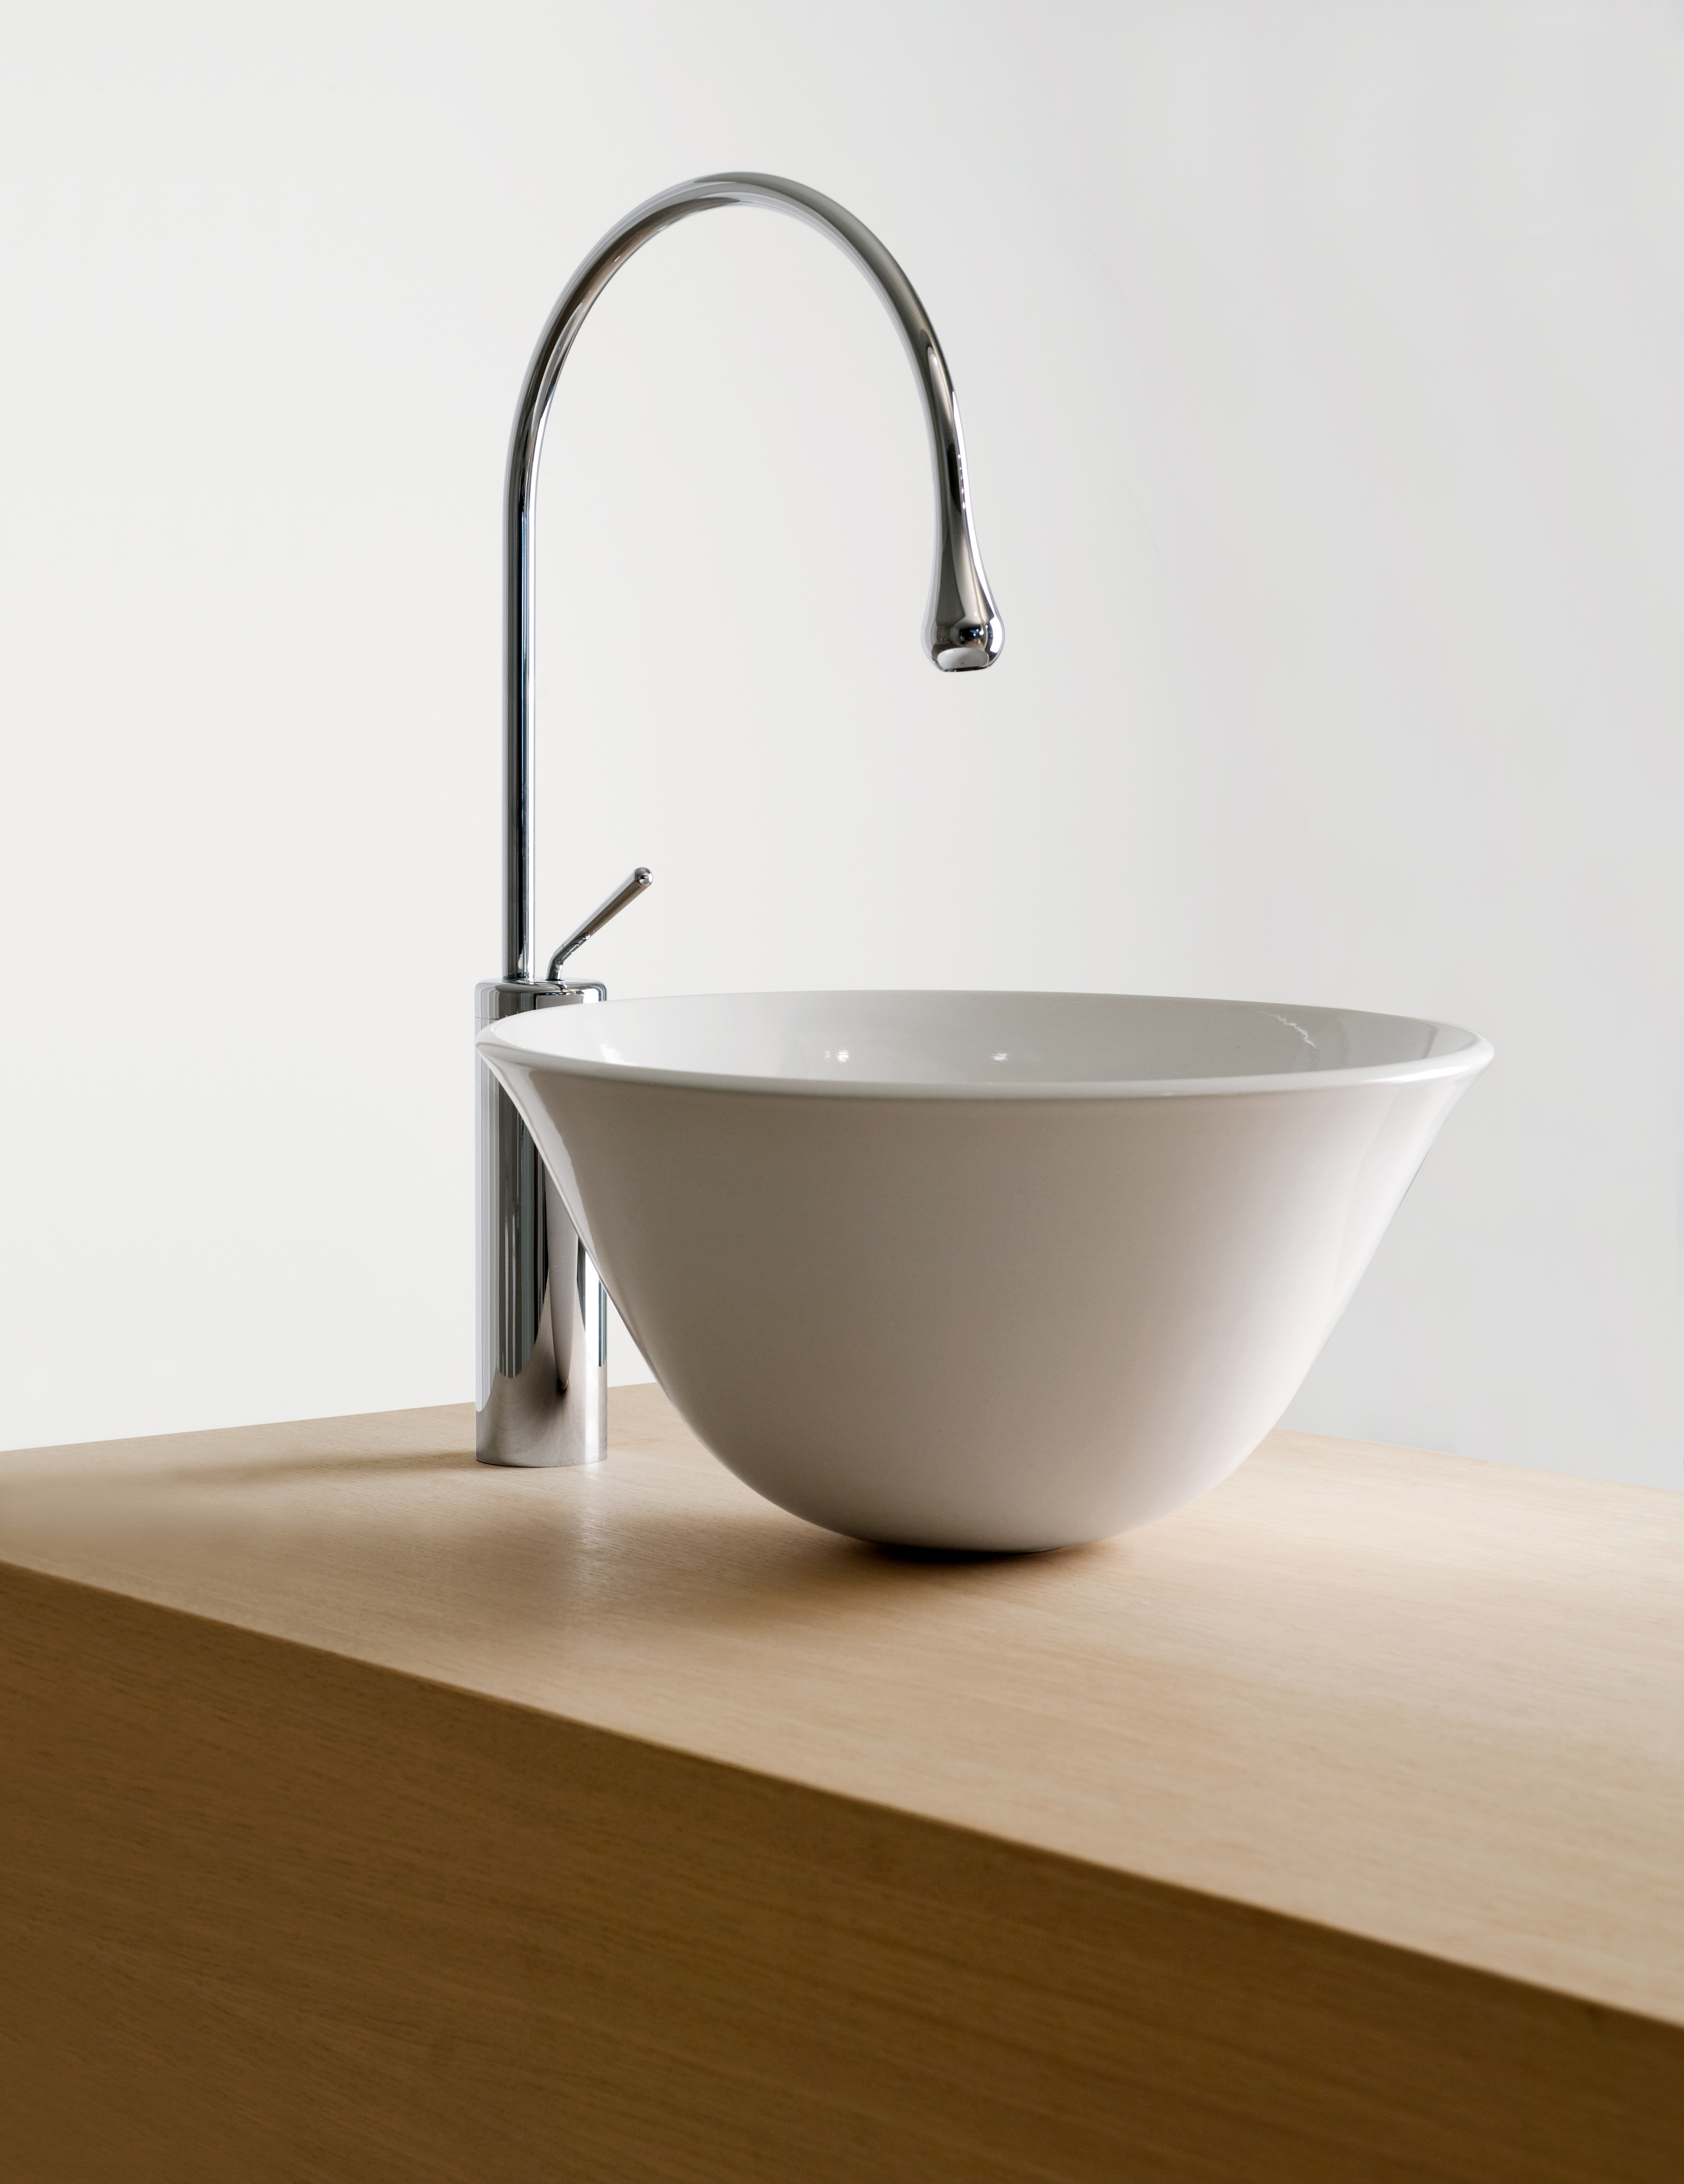 Gessi Goccia Luxury Faucet The Panday Group